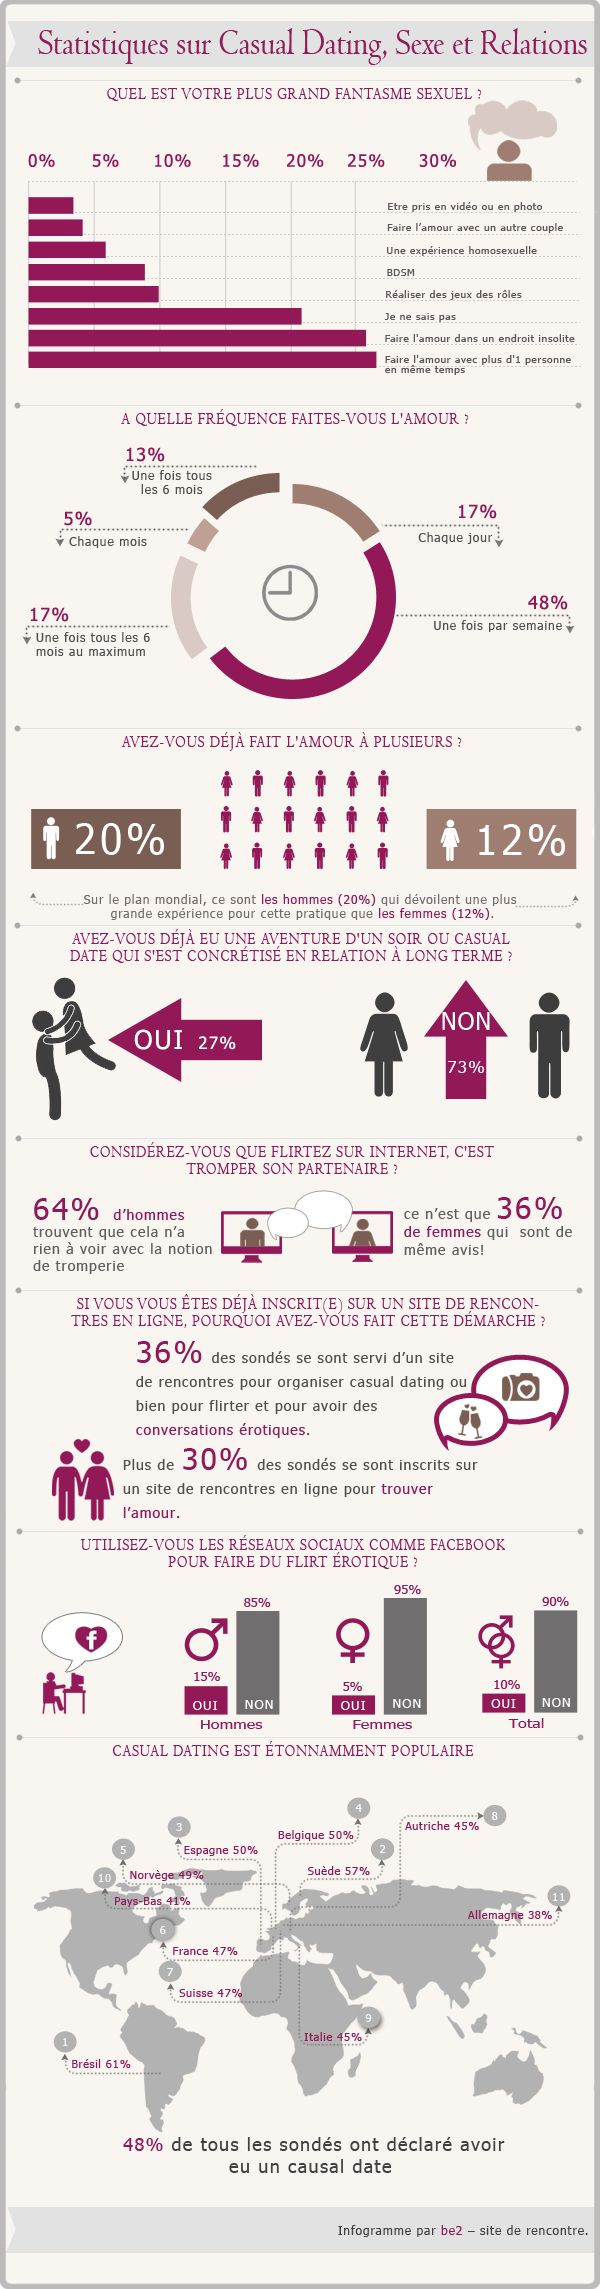 images about Infographie Dating on Pinterest   Healthy